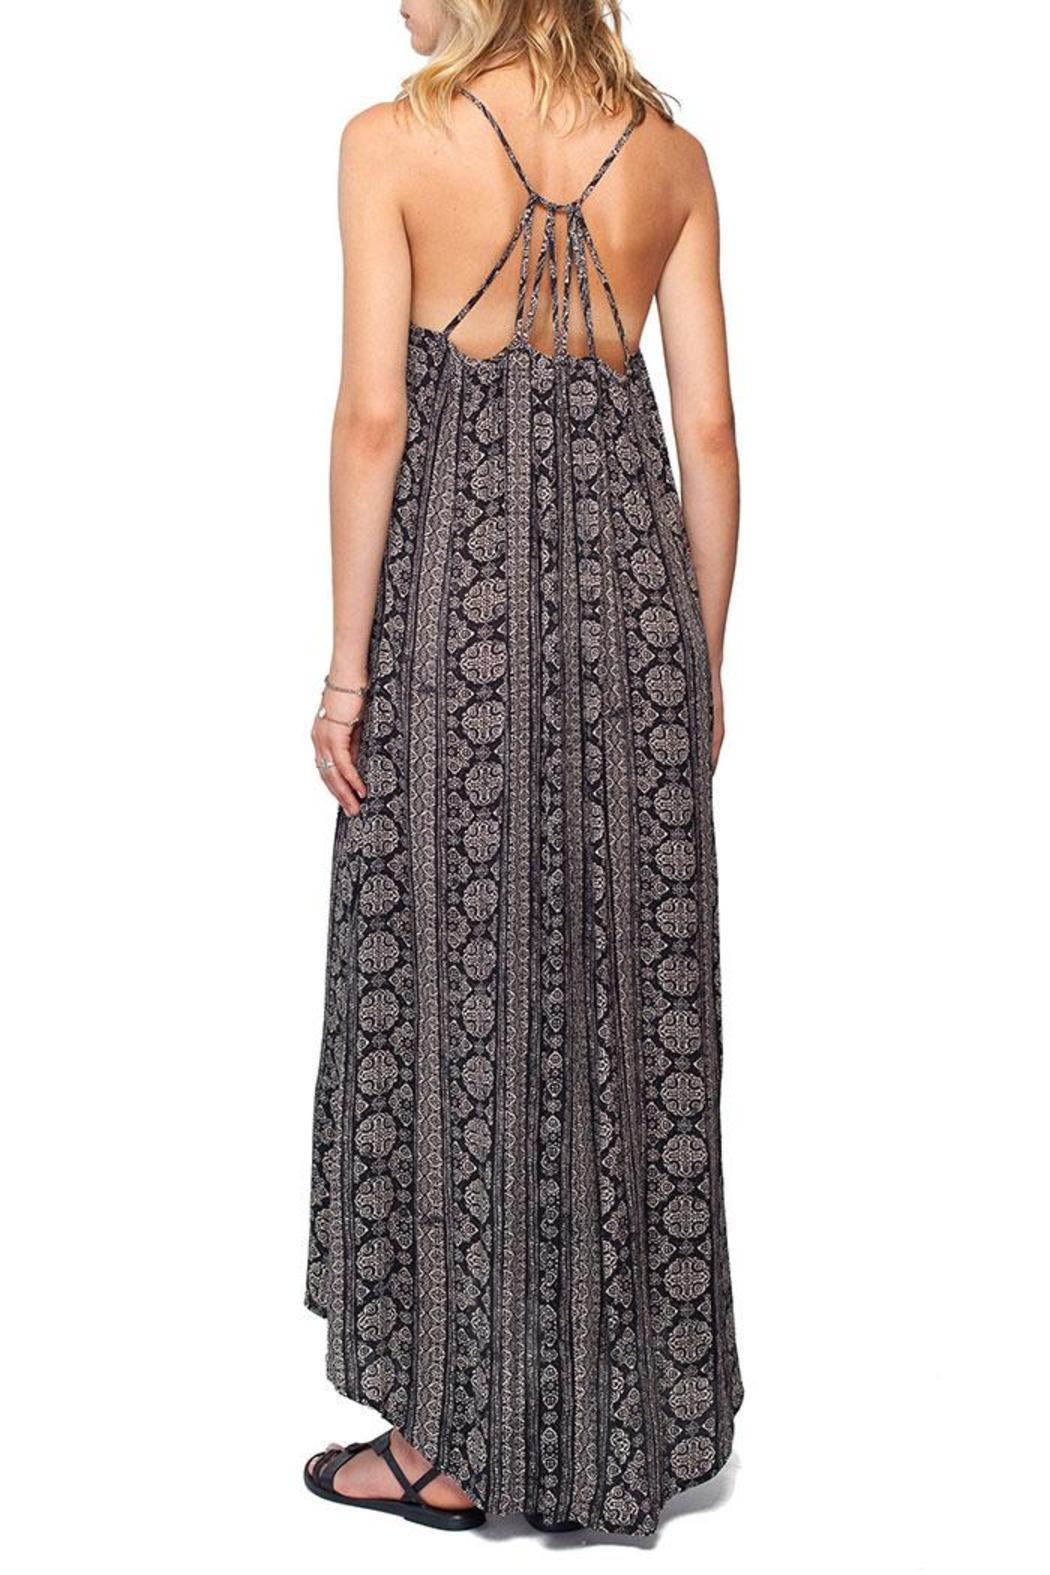 Gentle Fawn Mica Maxi Dress - Side Cropped Image